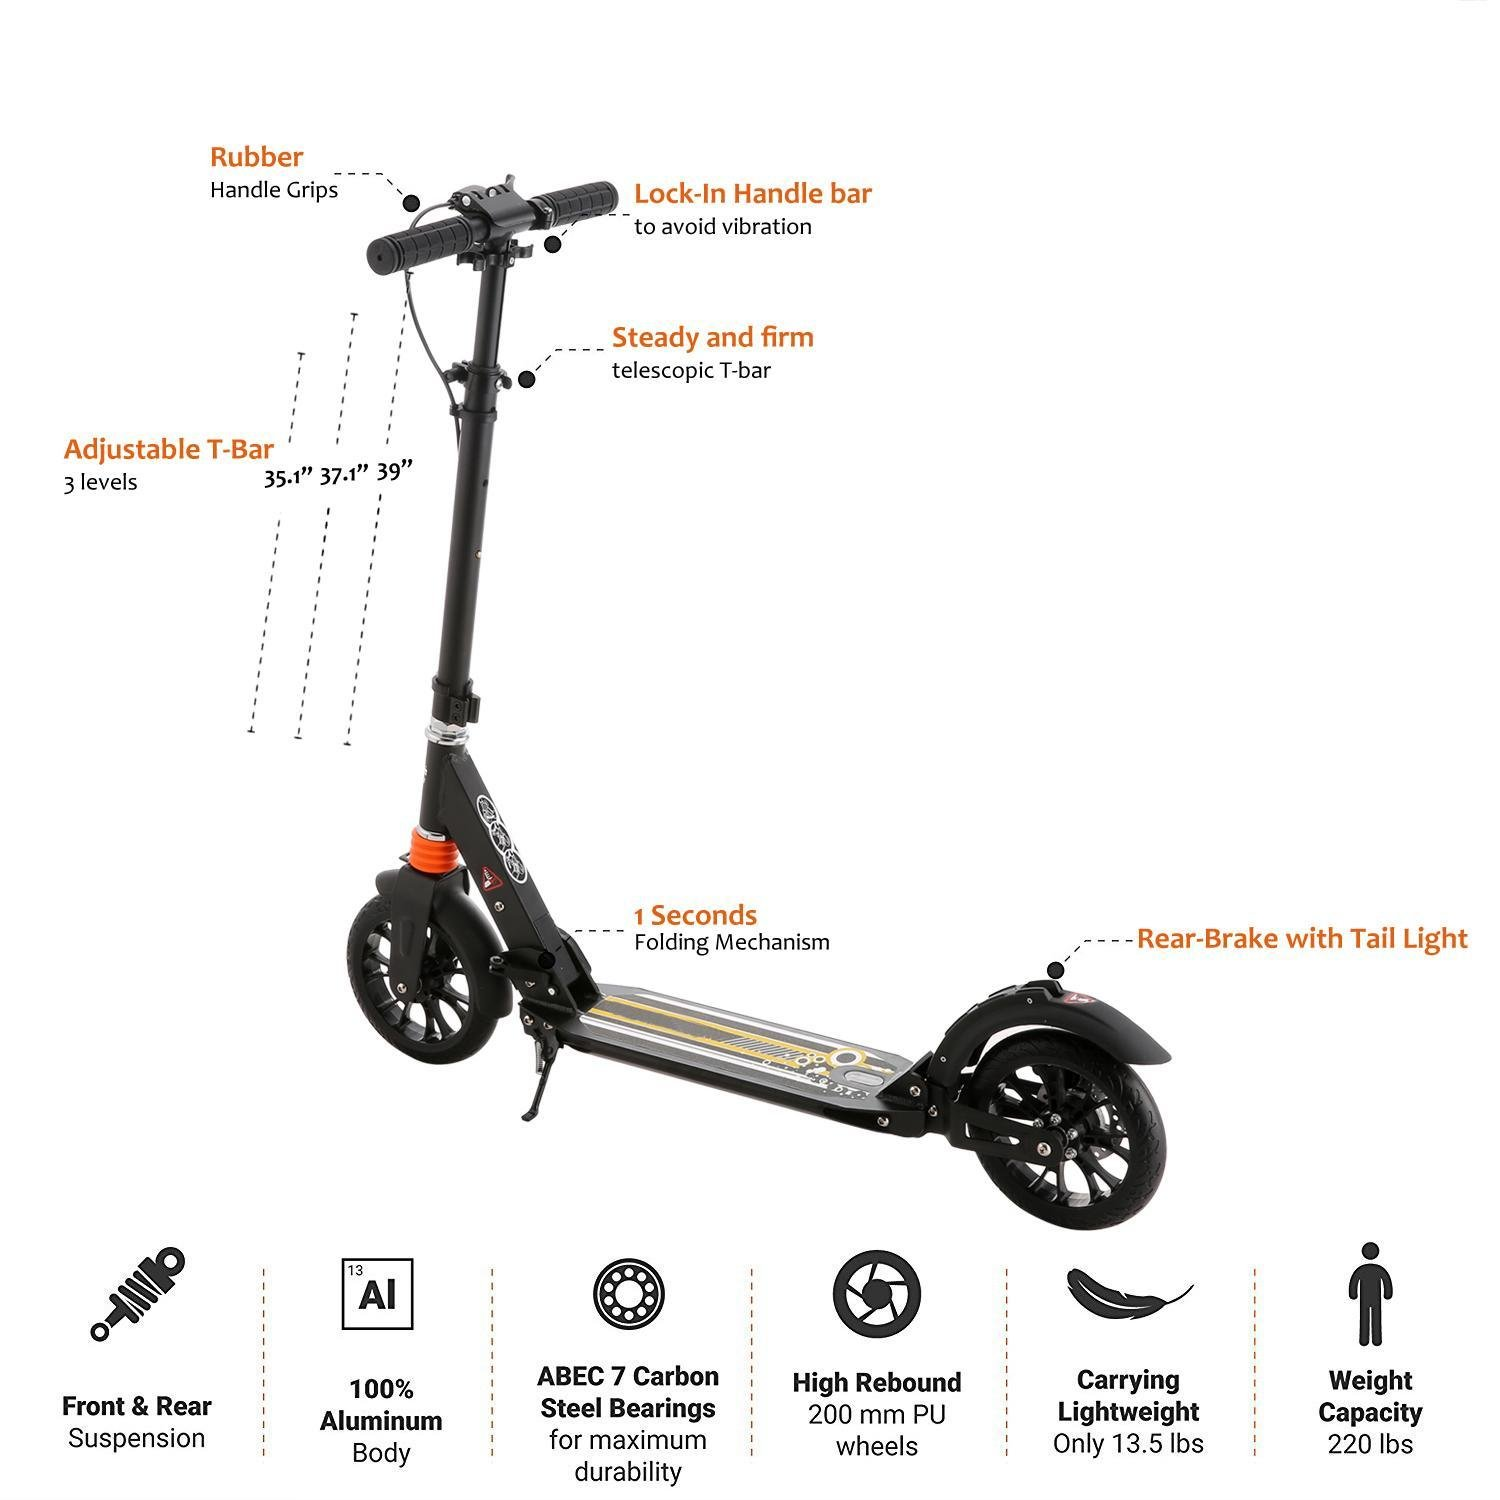 Keland Portable & Foldable 2 Wheel Kick Scooter with 3 Levels Adjustable T-bar for Adult & Teens, 220lbs(US Stock)